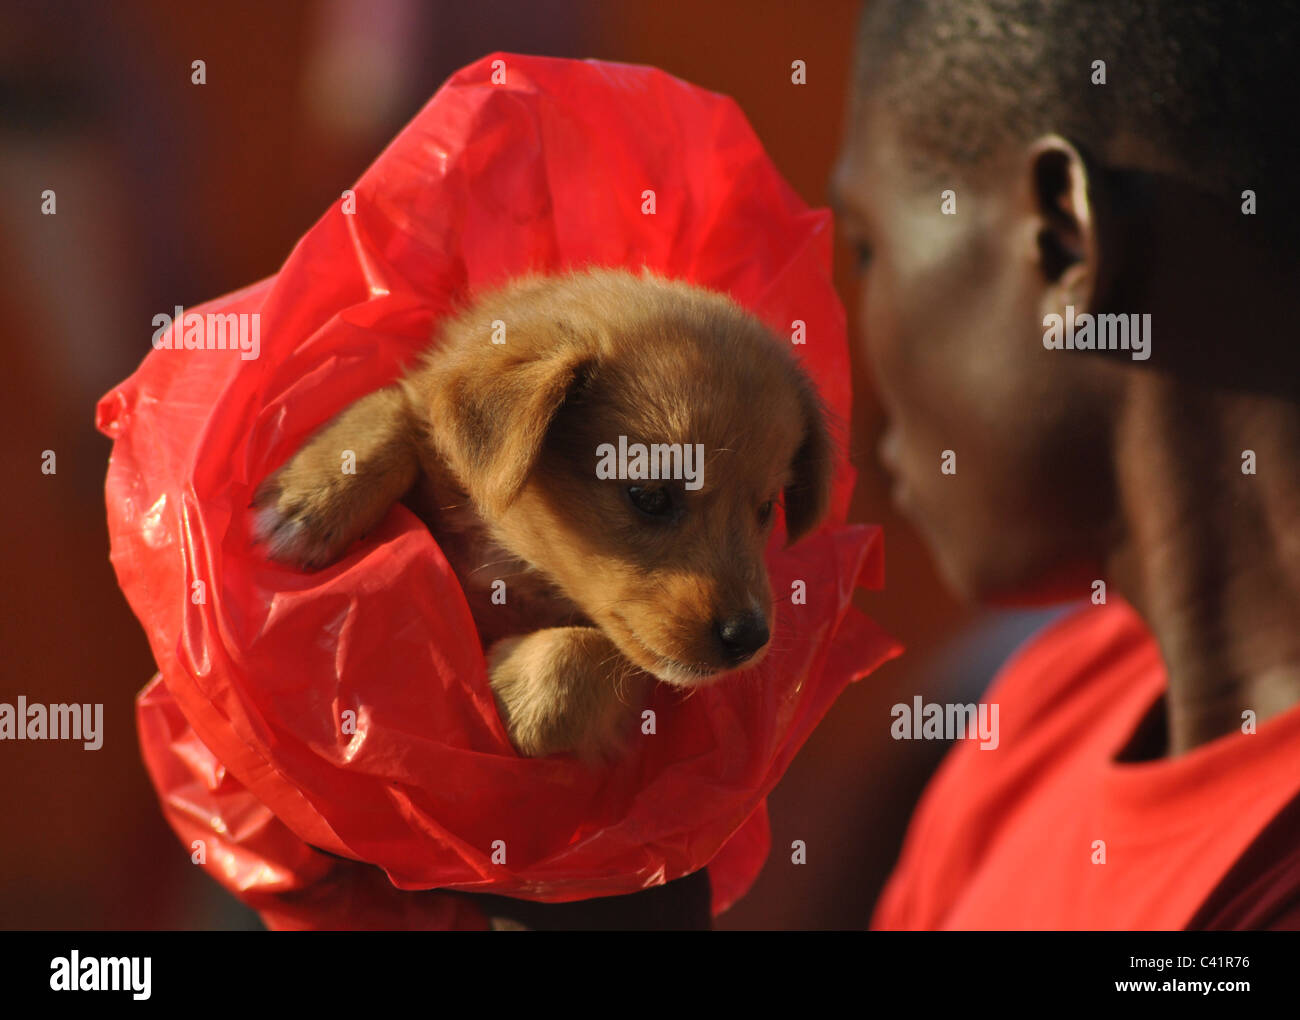 Puppy in a plastic bag, Ivory Coast, West Africa - Stock Image